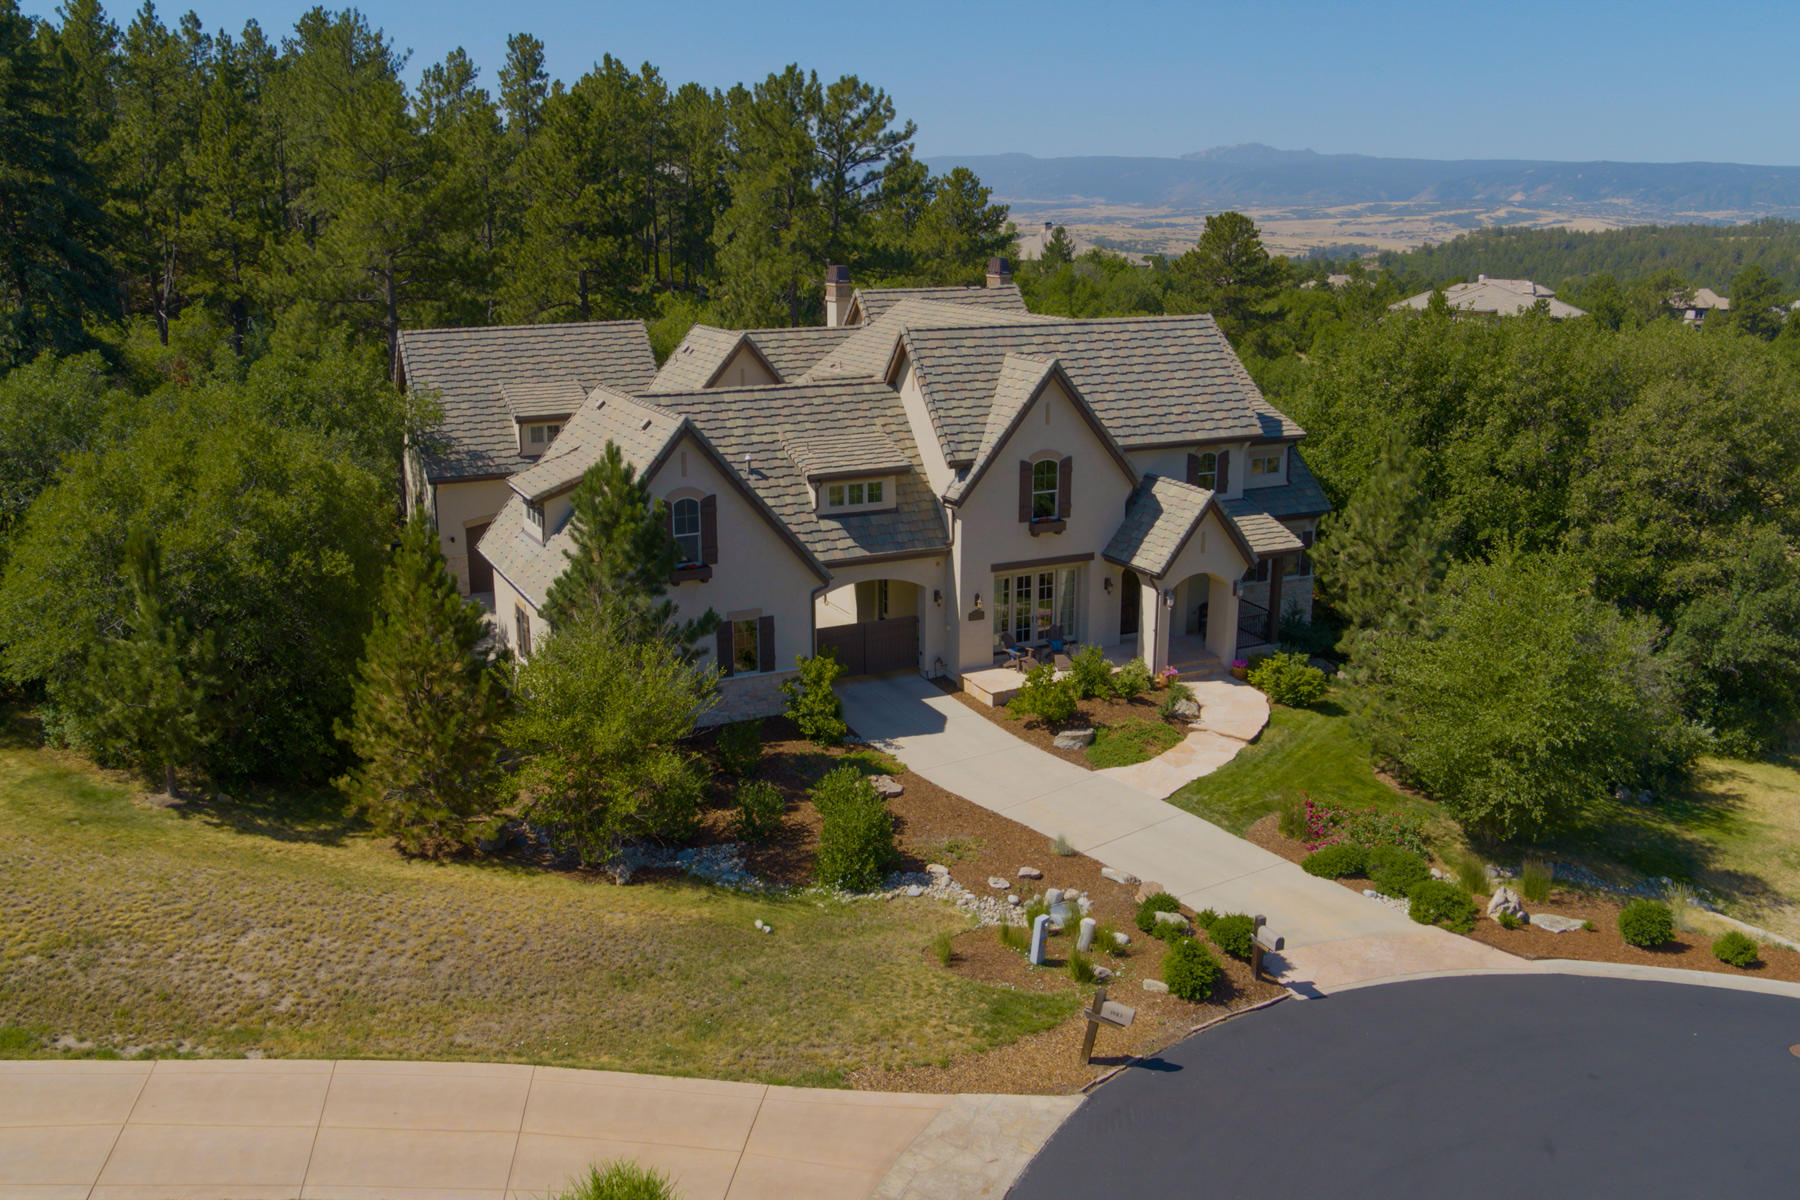 Single Family Home for Active at 1041 Meteor Pl 1041 Meteor Pl Castle Rock, Colorado 80108 United States